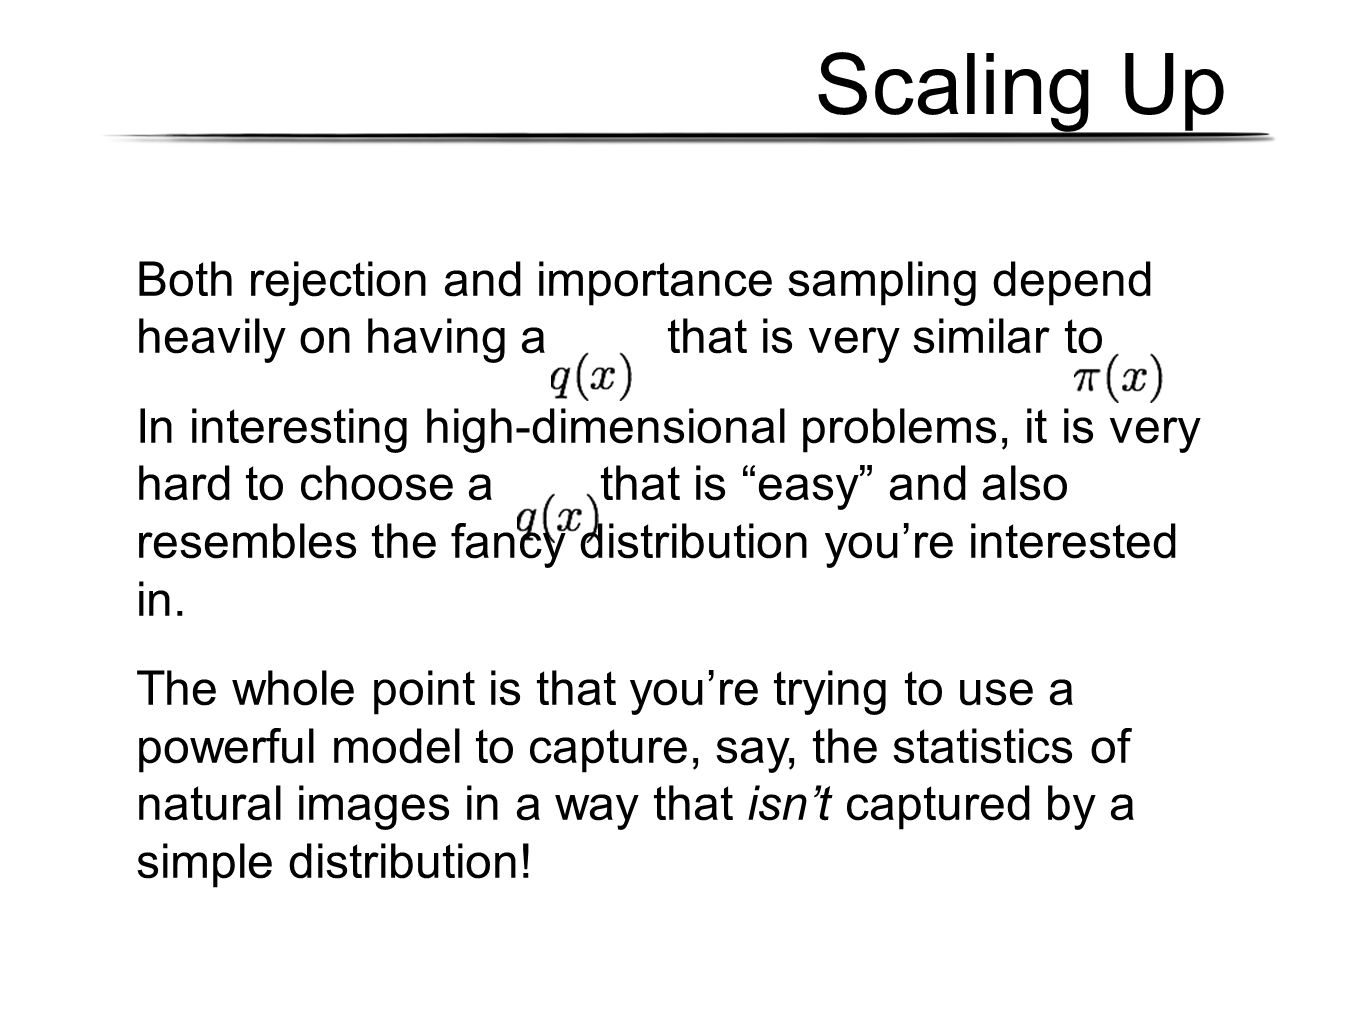 Scaling Up Both rejection and importance sampling depend heavily on having a that is very similar to In interesting high-dimensional problems, it is very hard to choose a that is easy and also resembles the fancy distribution you're interested in.